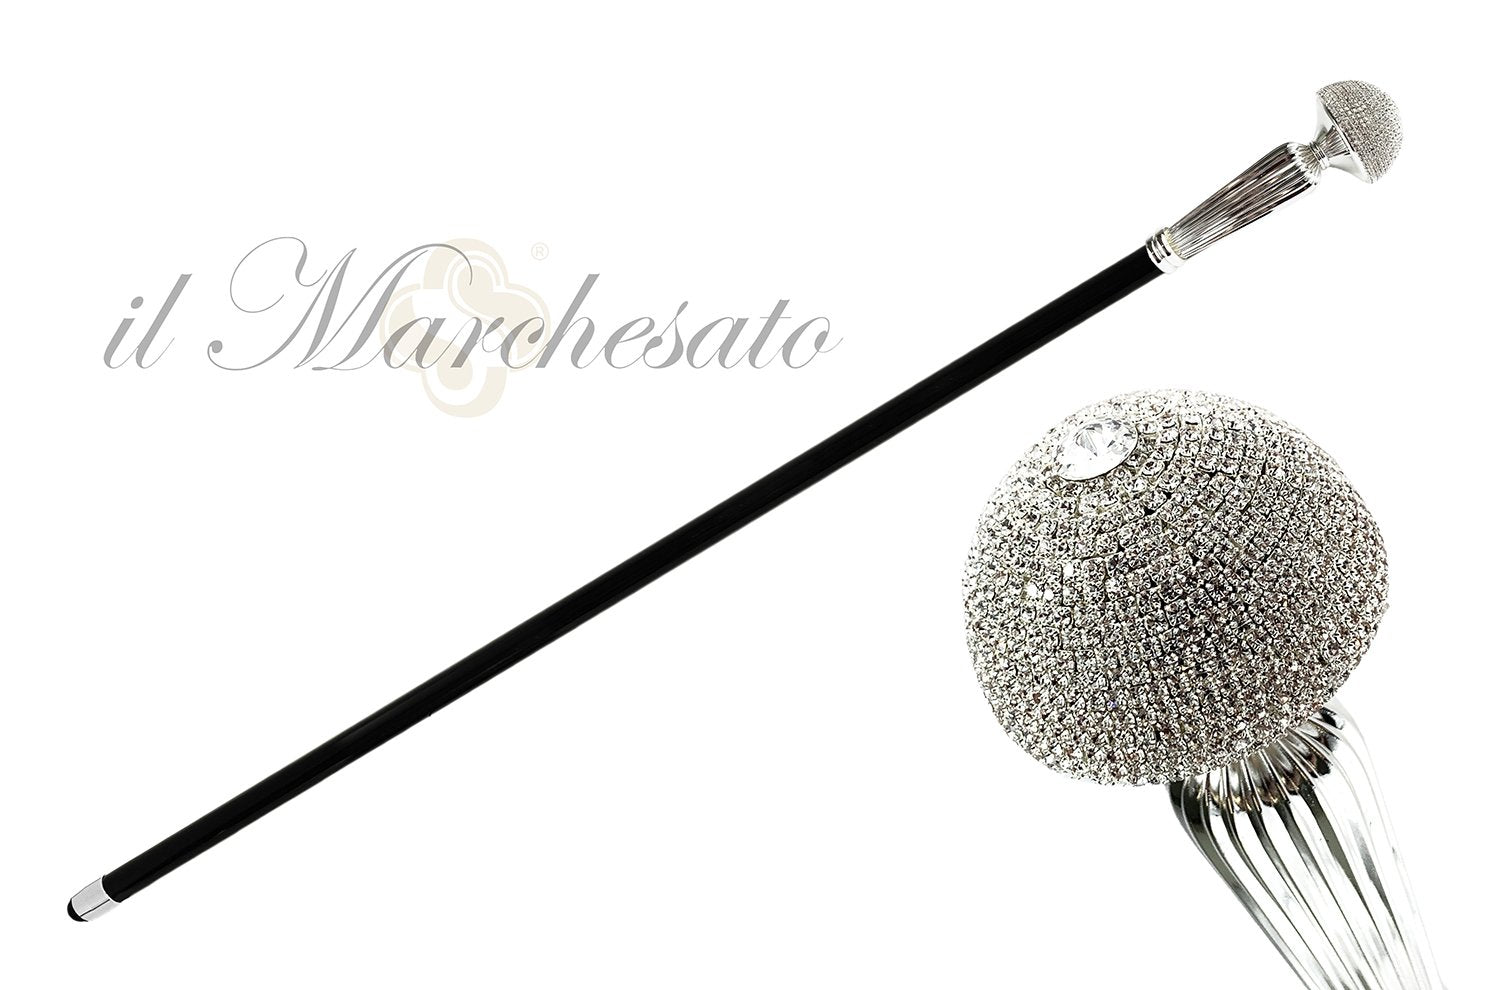 WALKING STICK  SWAROVSKI CRYSTALS ENCRUSTED